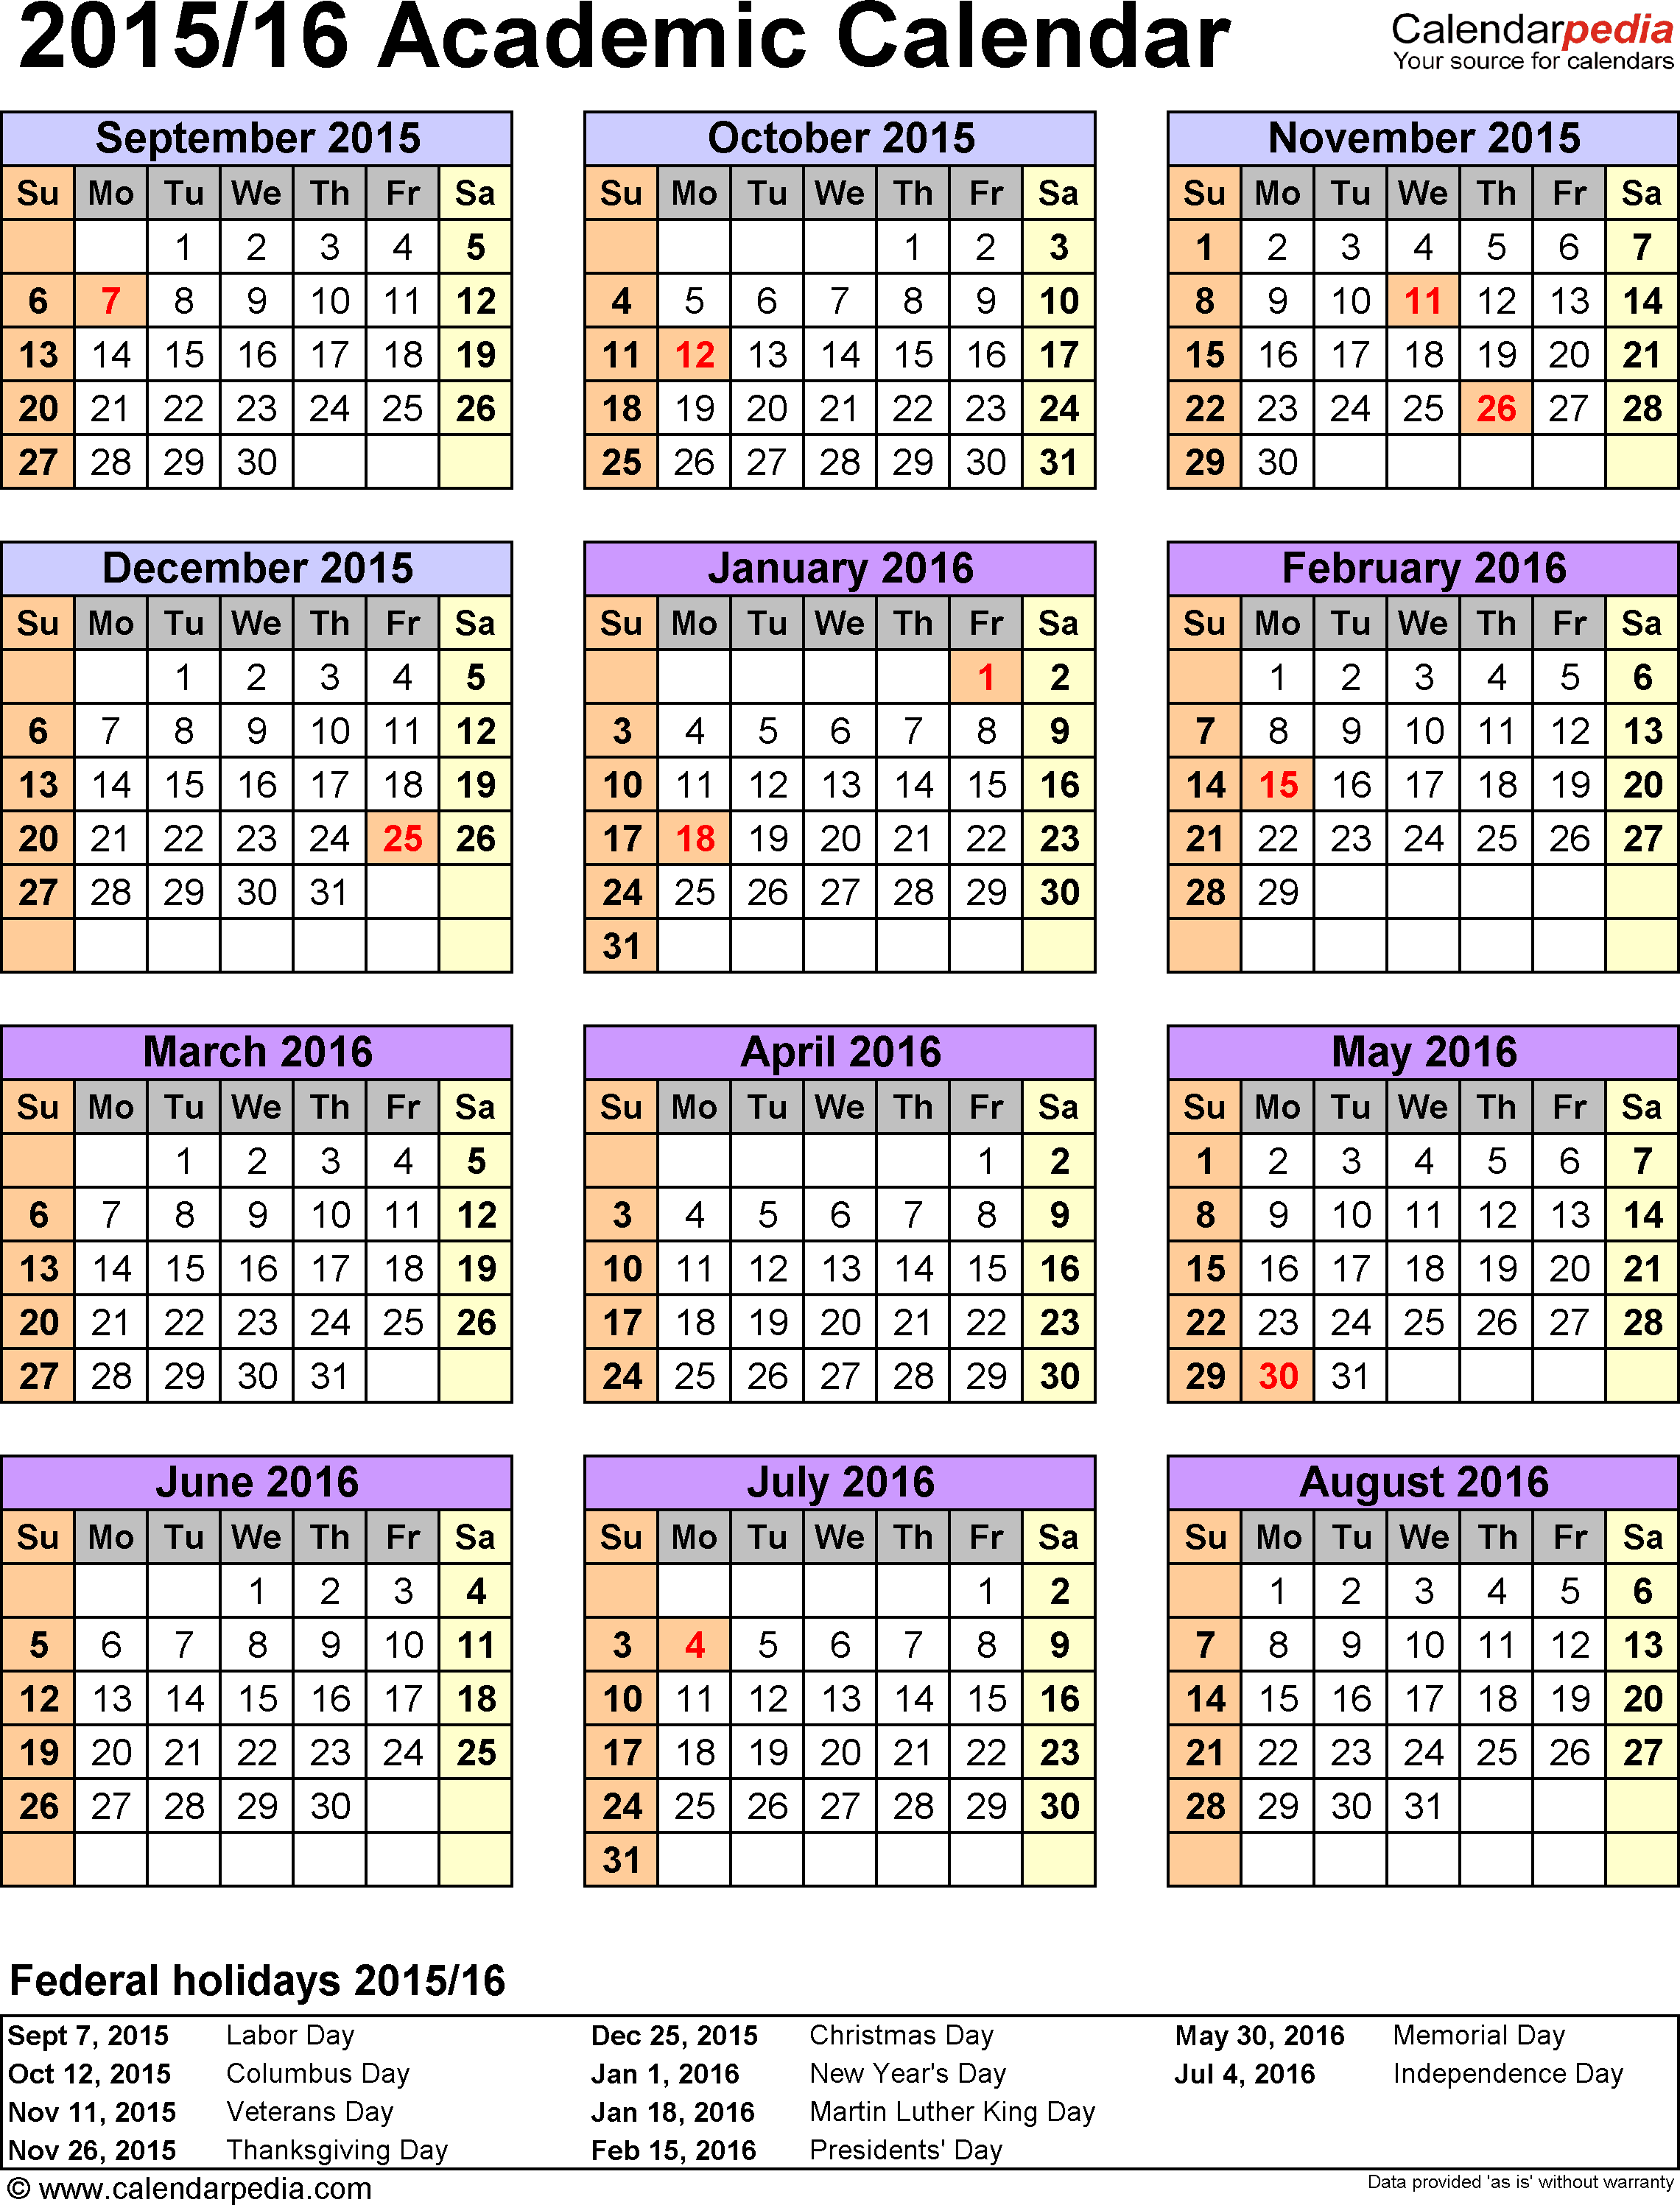 Template 7: Academic calendar 2015/16, in PDF format, portrait, 1 page, year at a glance